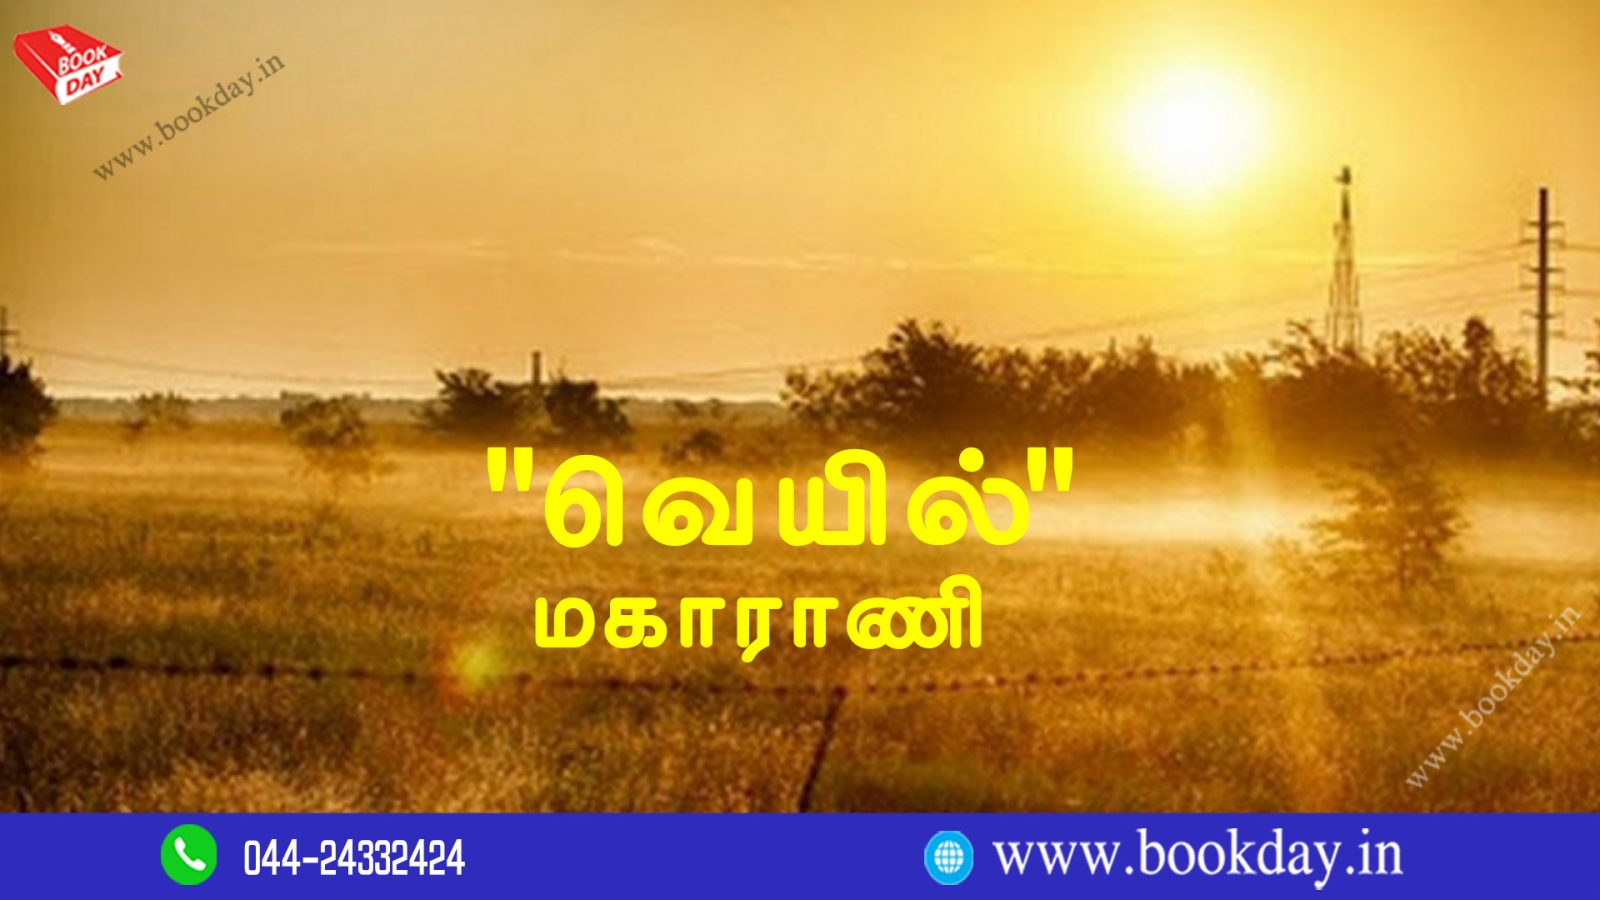 Veyil Poetry By Maharani. வெயில்..! - மகாராணி. Book Day And Bharathi TV Are Branches of Bharathi Puthakalayam.